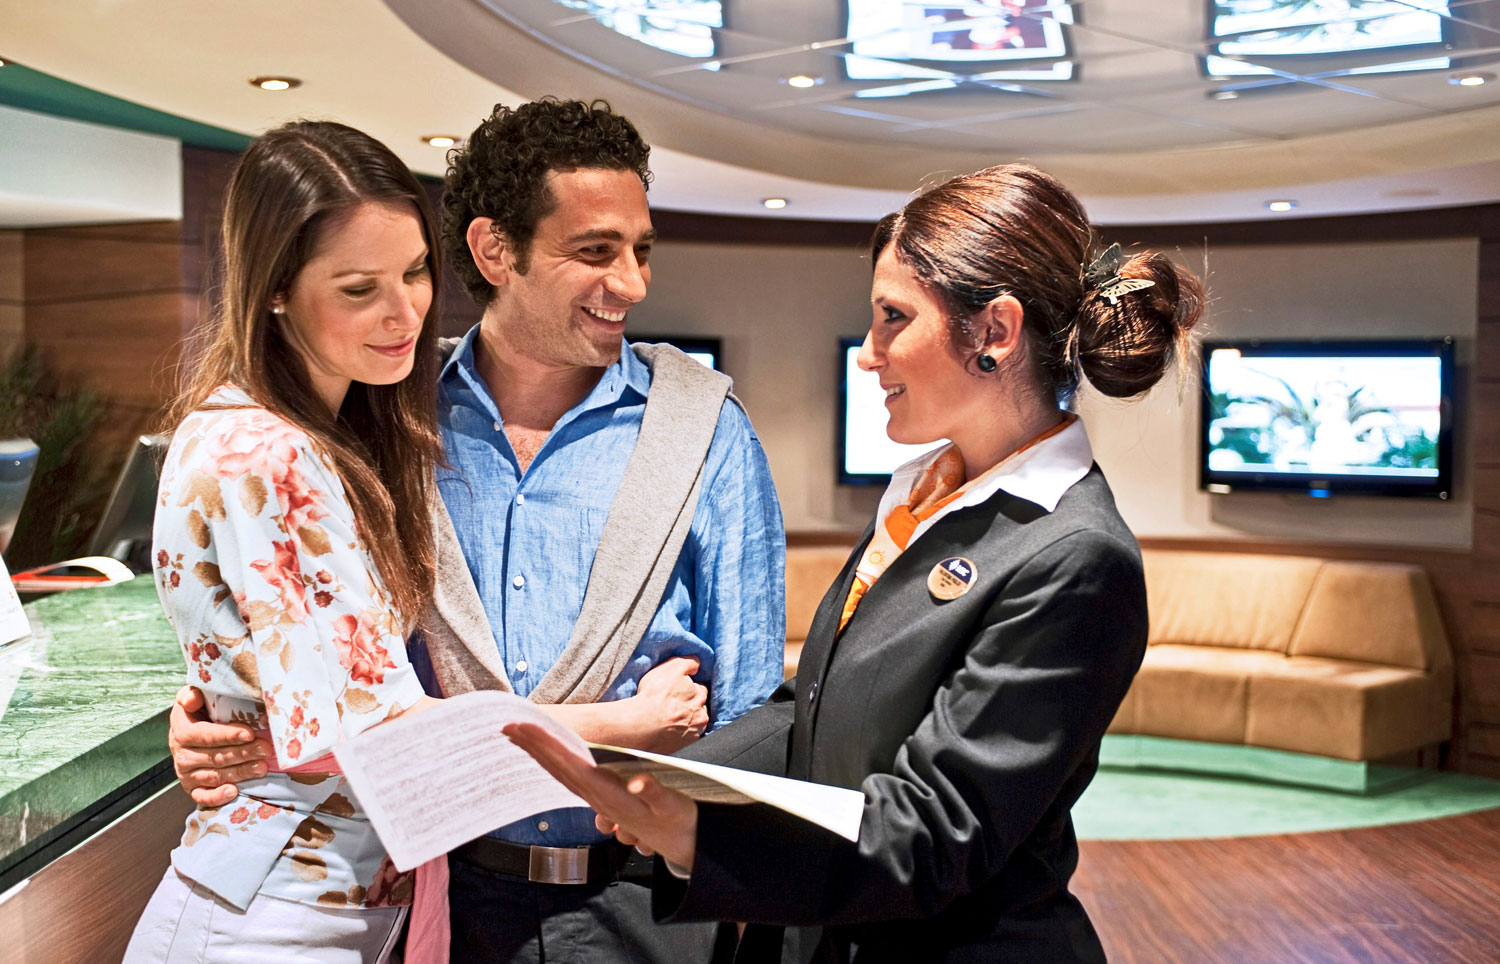 msc-voyager-club-status-match-welcome-1500